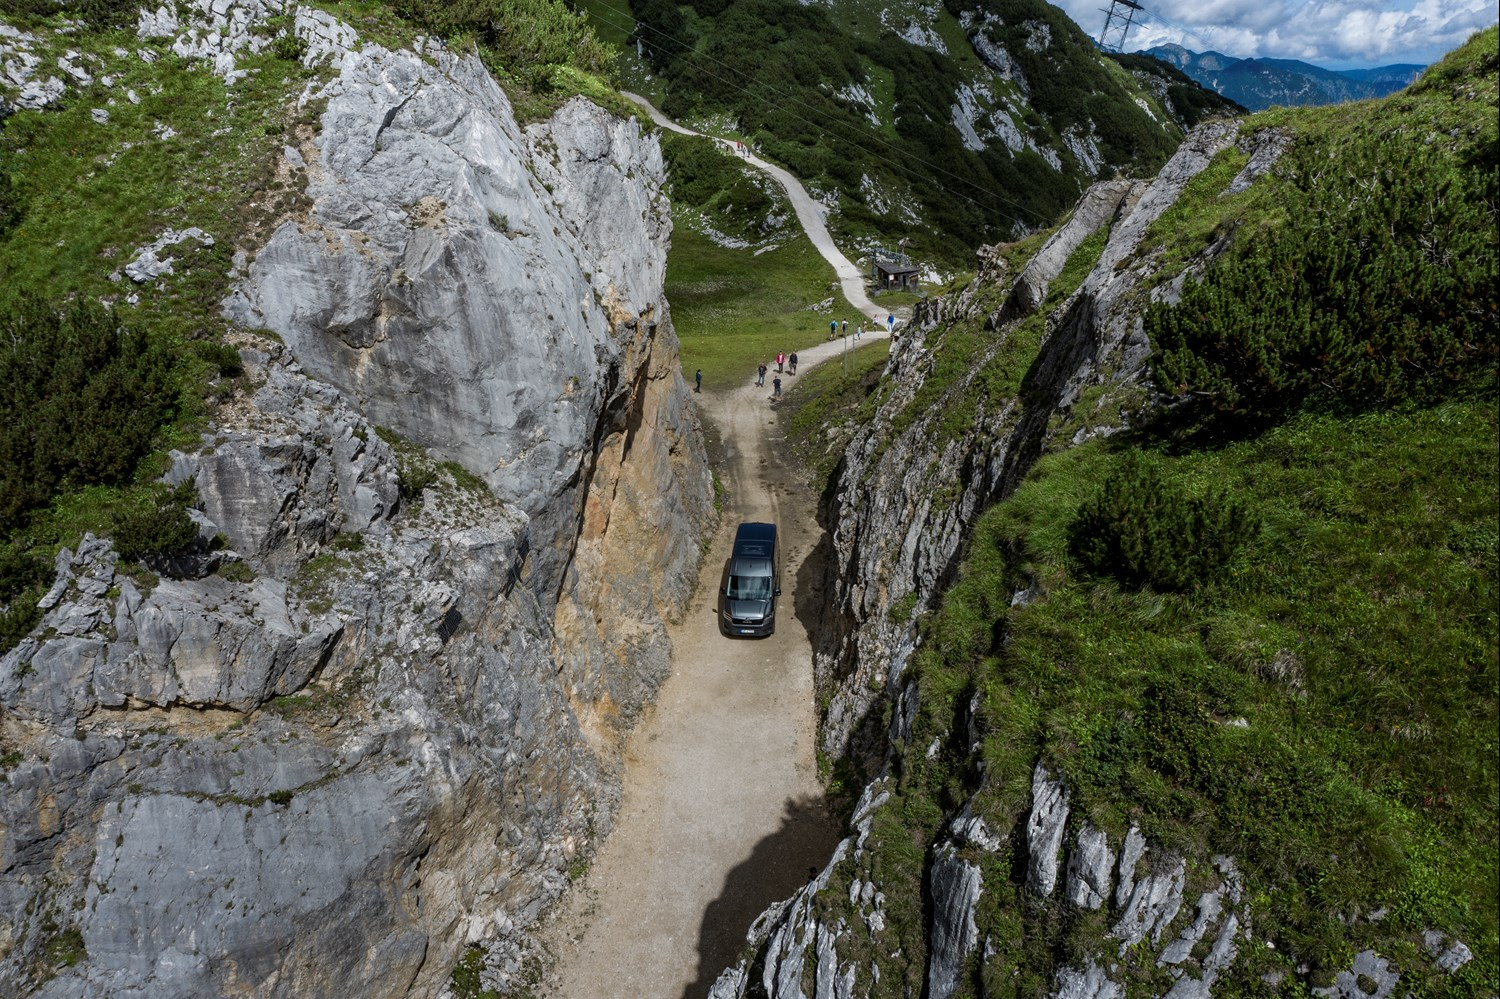 Bayerische Zugspitzbahn Bergbahn AG in Garmisch-Partenkirchen recently started using a MAN TGE Kombi 4x4 with a smart all-wheel drive system to transport food to the restaurants located high up in the mountains.